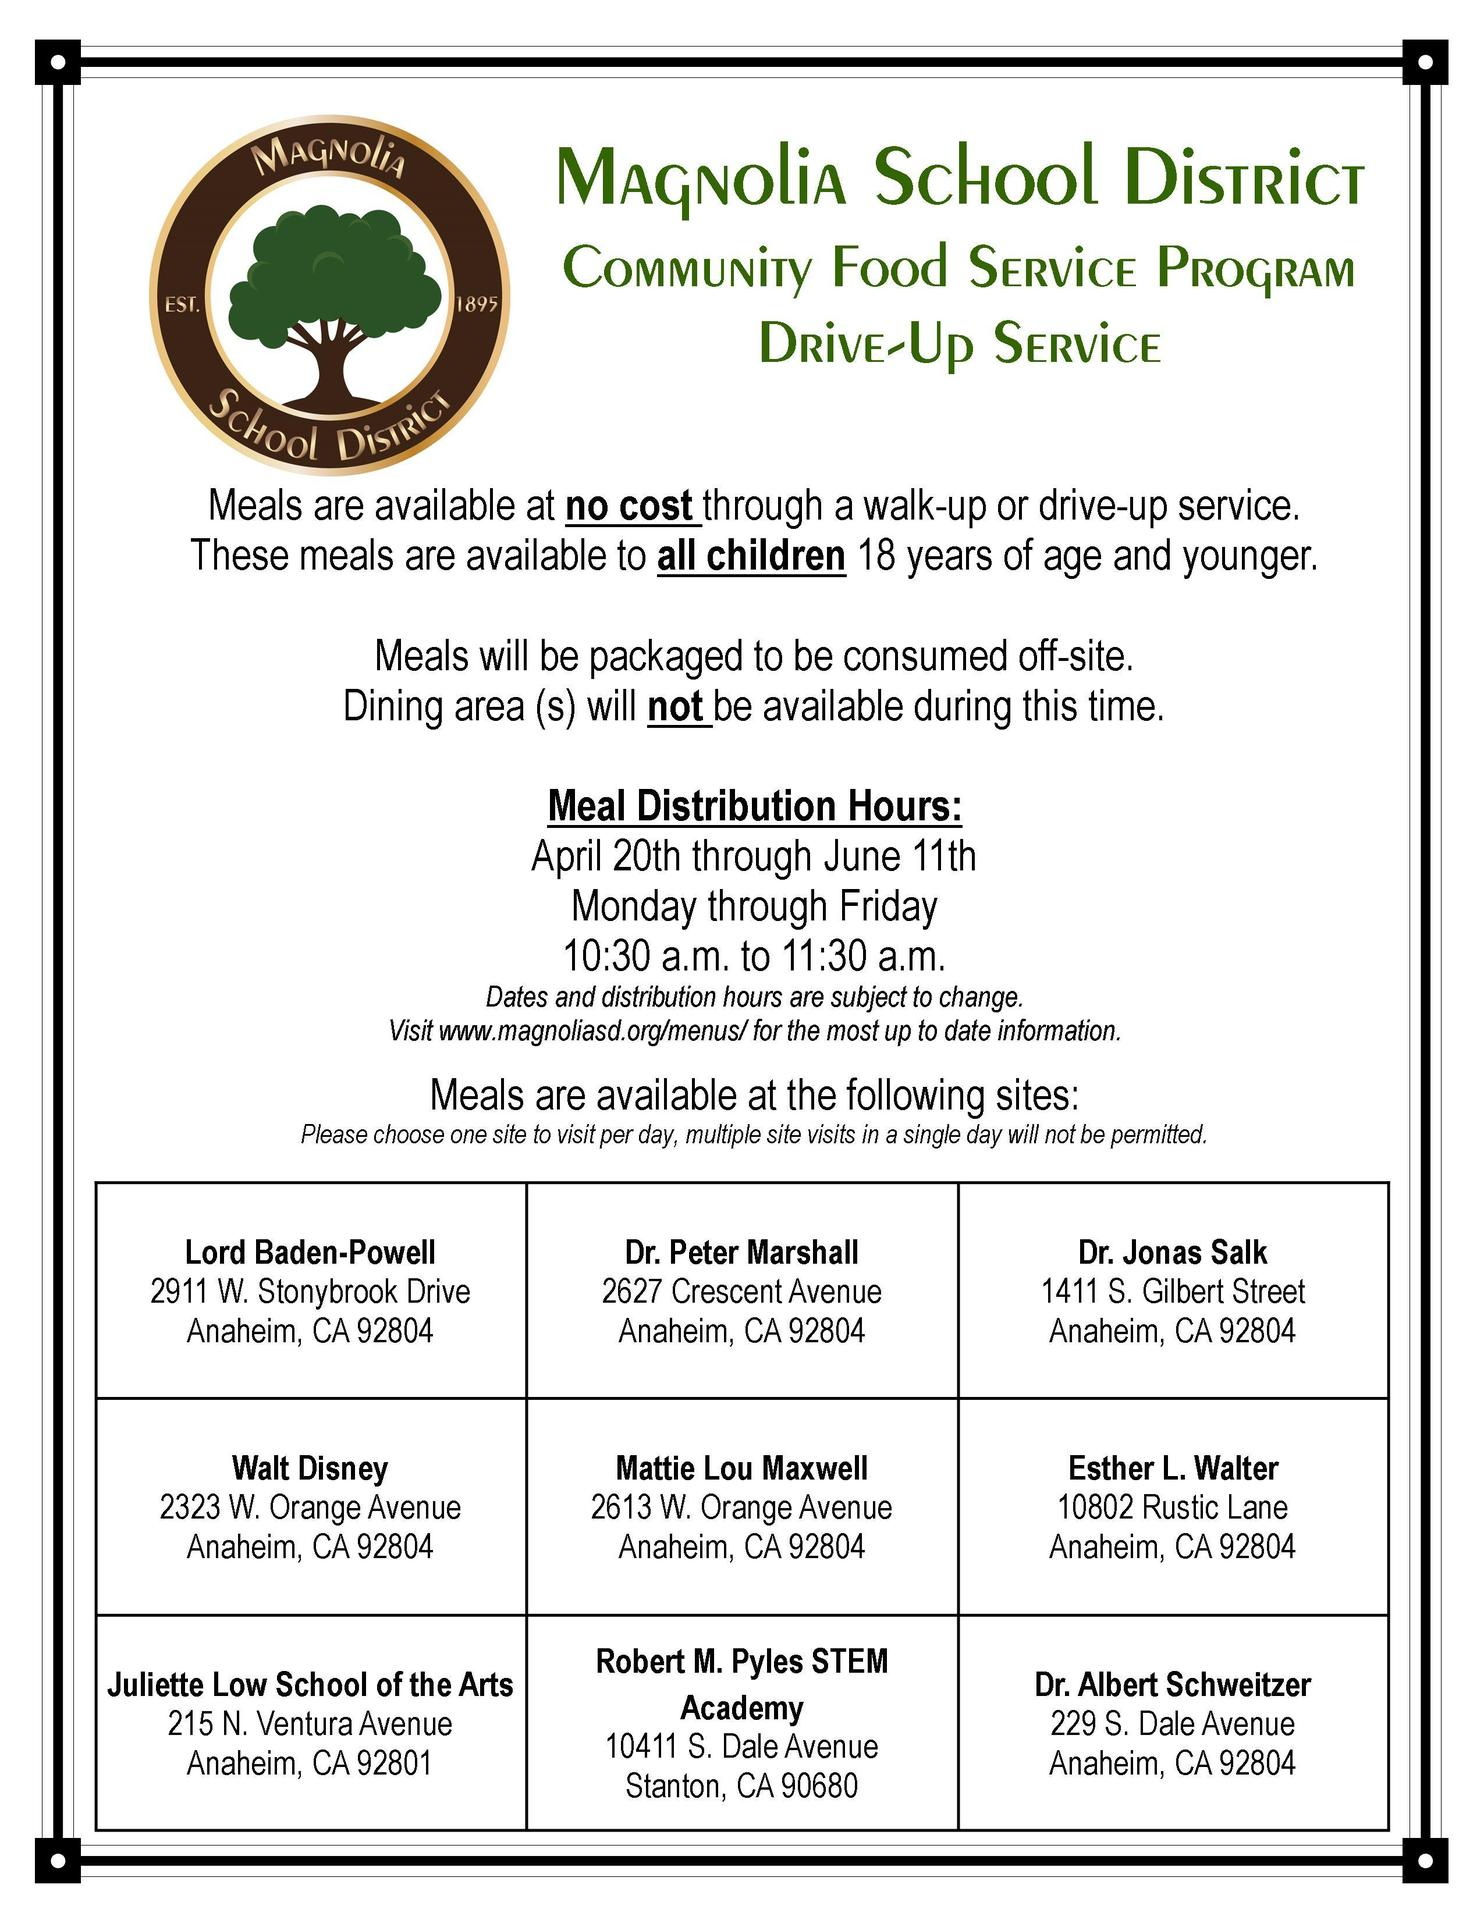 Community Food Service Flyer